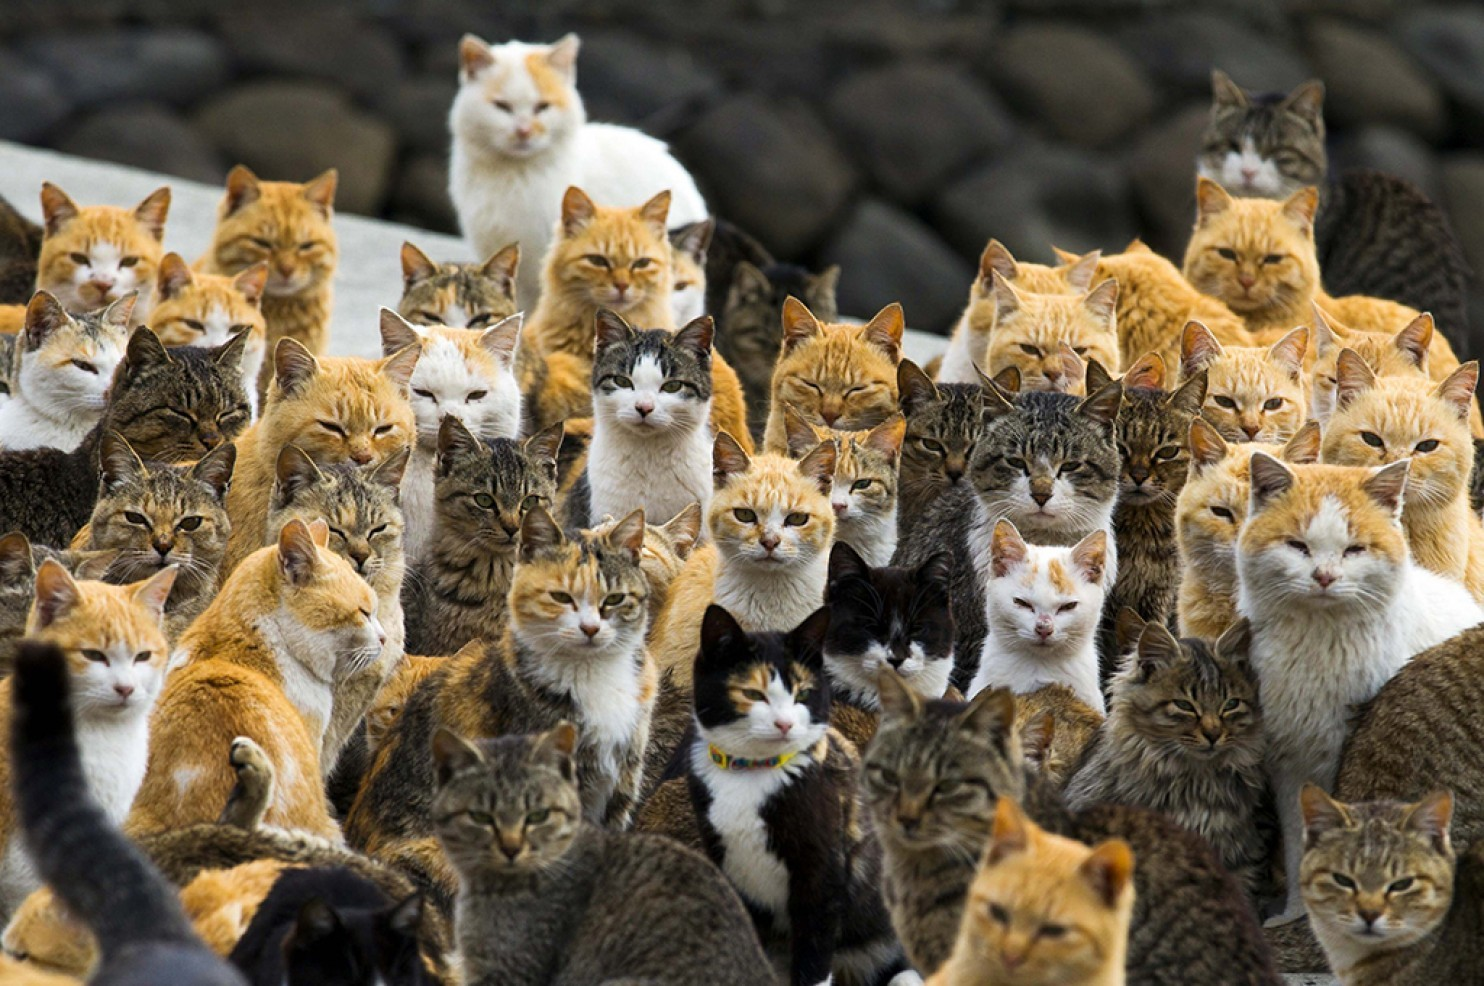 There's a place known as Cat Island, and it's exactly what it sounds like